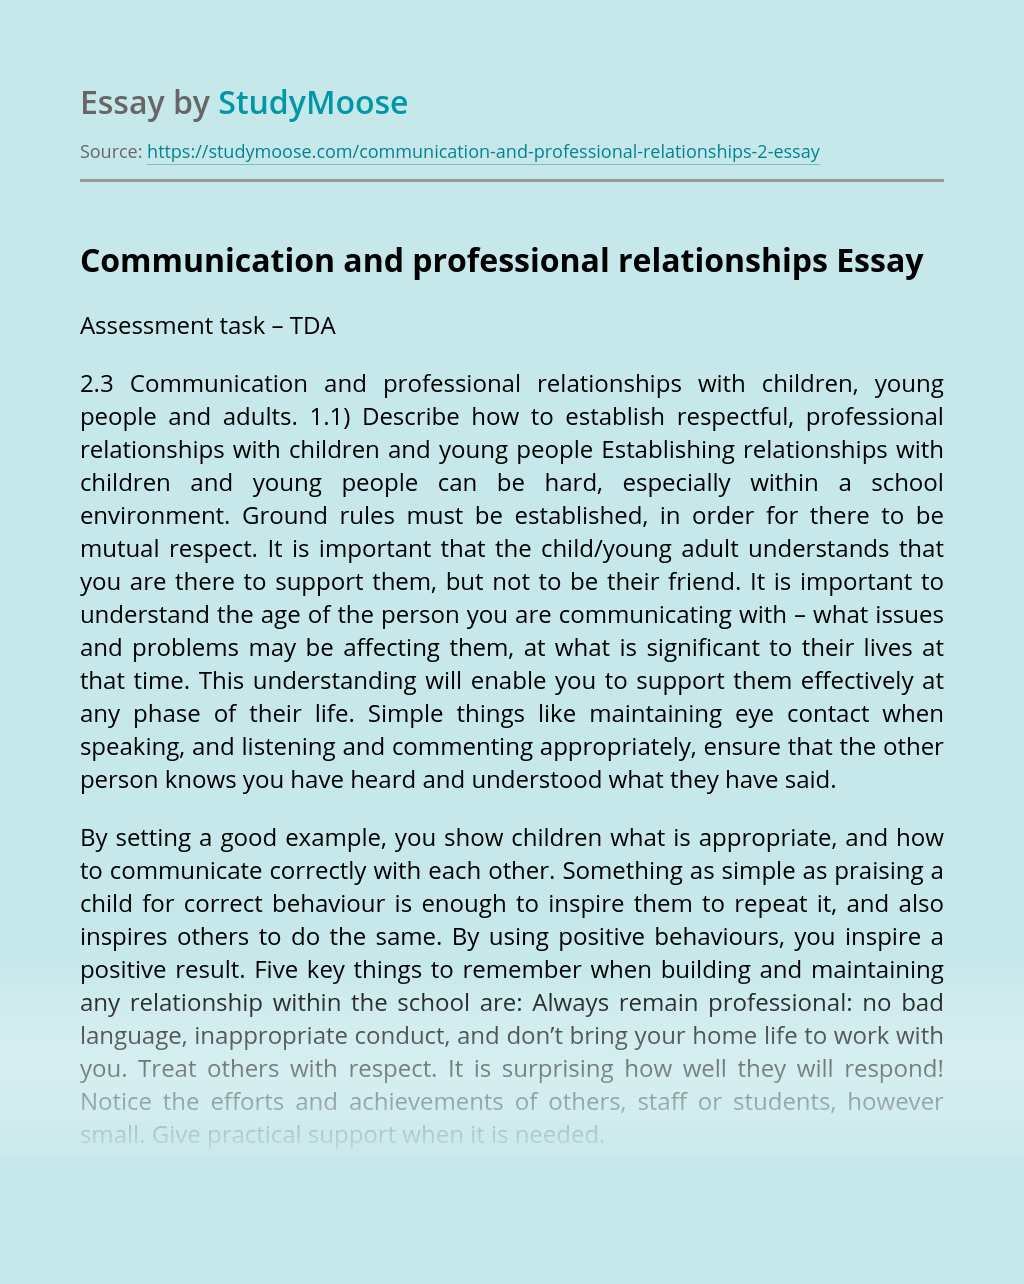 Communication and professional relationships